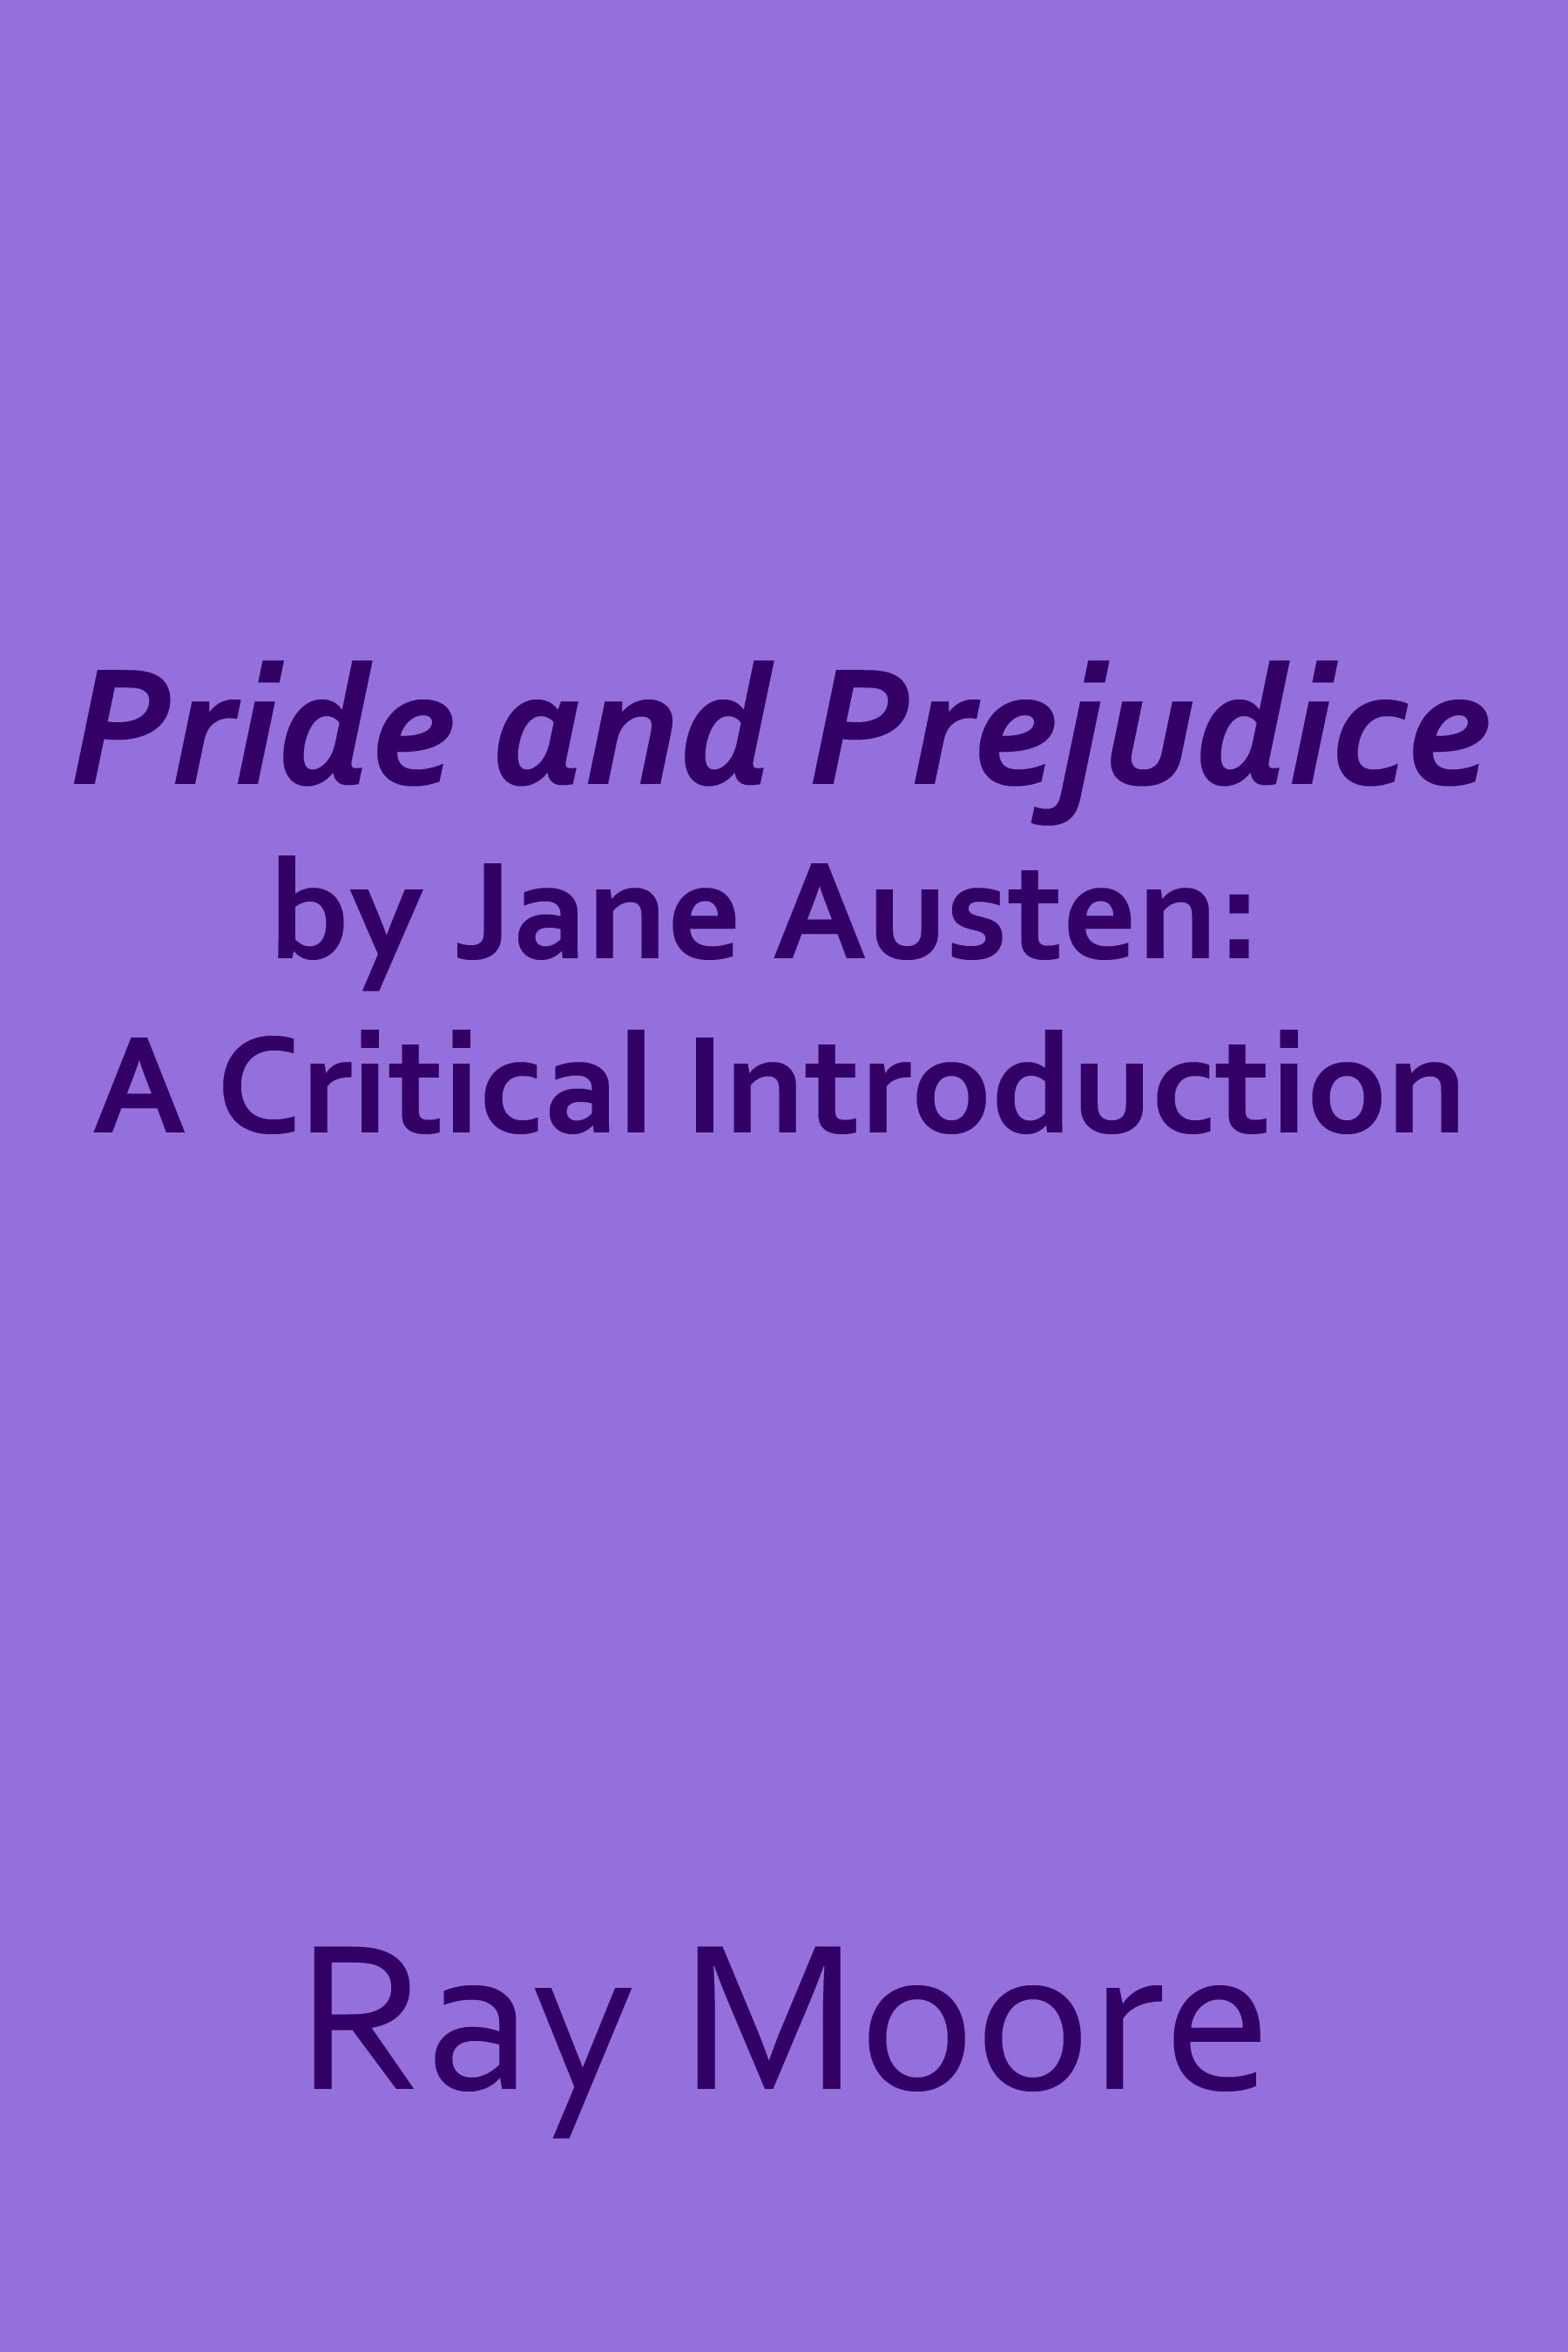 pride and prejudice literary criticism Pride and prejudice is an 1813 romantic novel by jane austen it charts the  emotional  it has become one of the most popular novels in english literature,  with over 20 million copies sold, and paved the  one critic, mary poovey,  wrote the romantic conclusion of pride and prejudice is an attempt to hedge the  conflict.